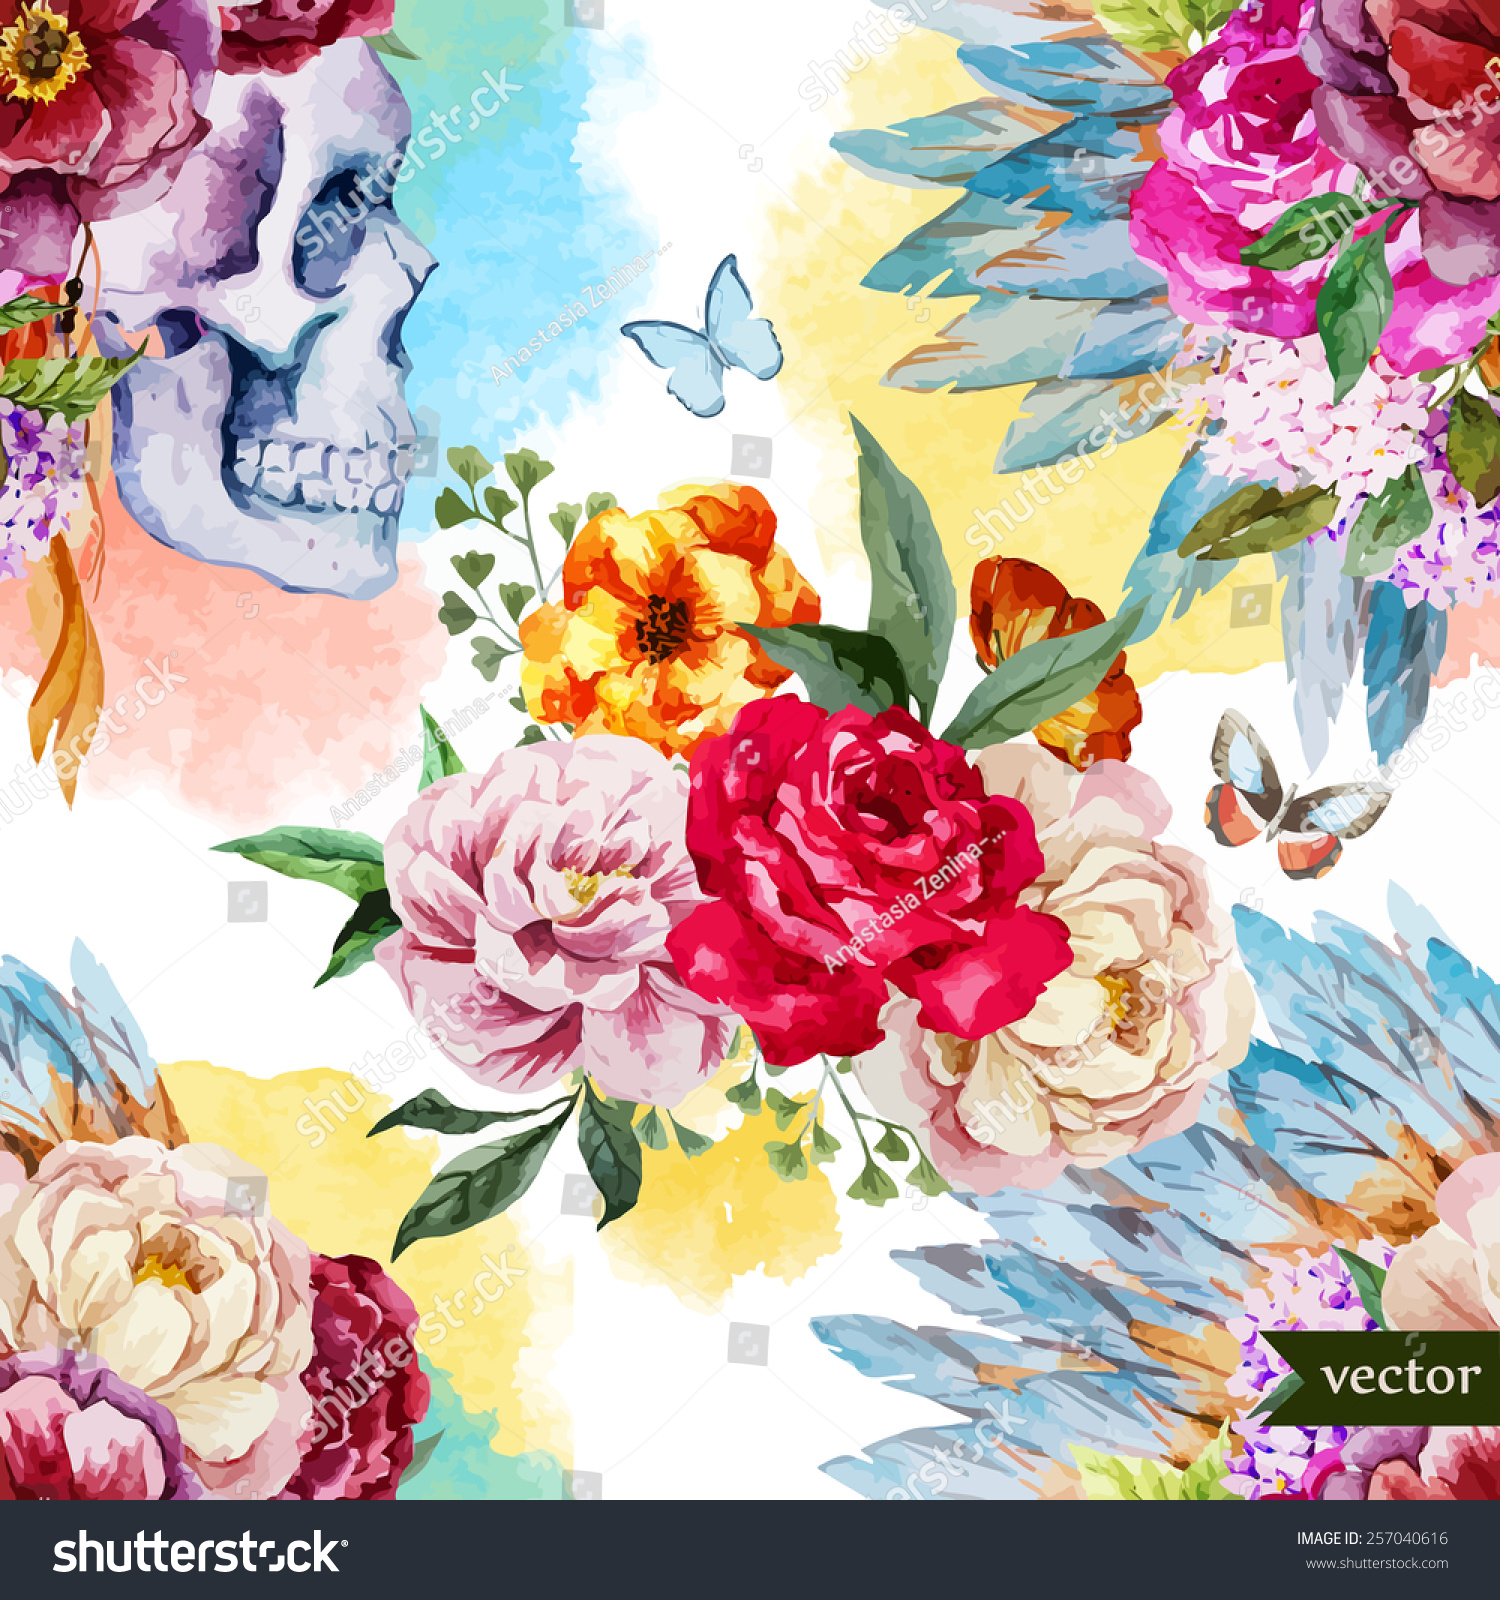 Watercolor Skull Flowers Indian Bohopattern Wallpaper Stock Vector